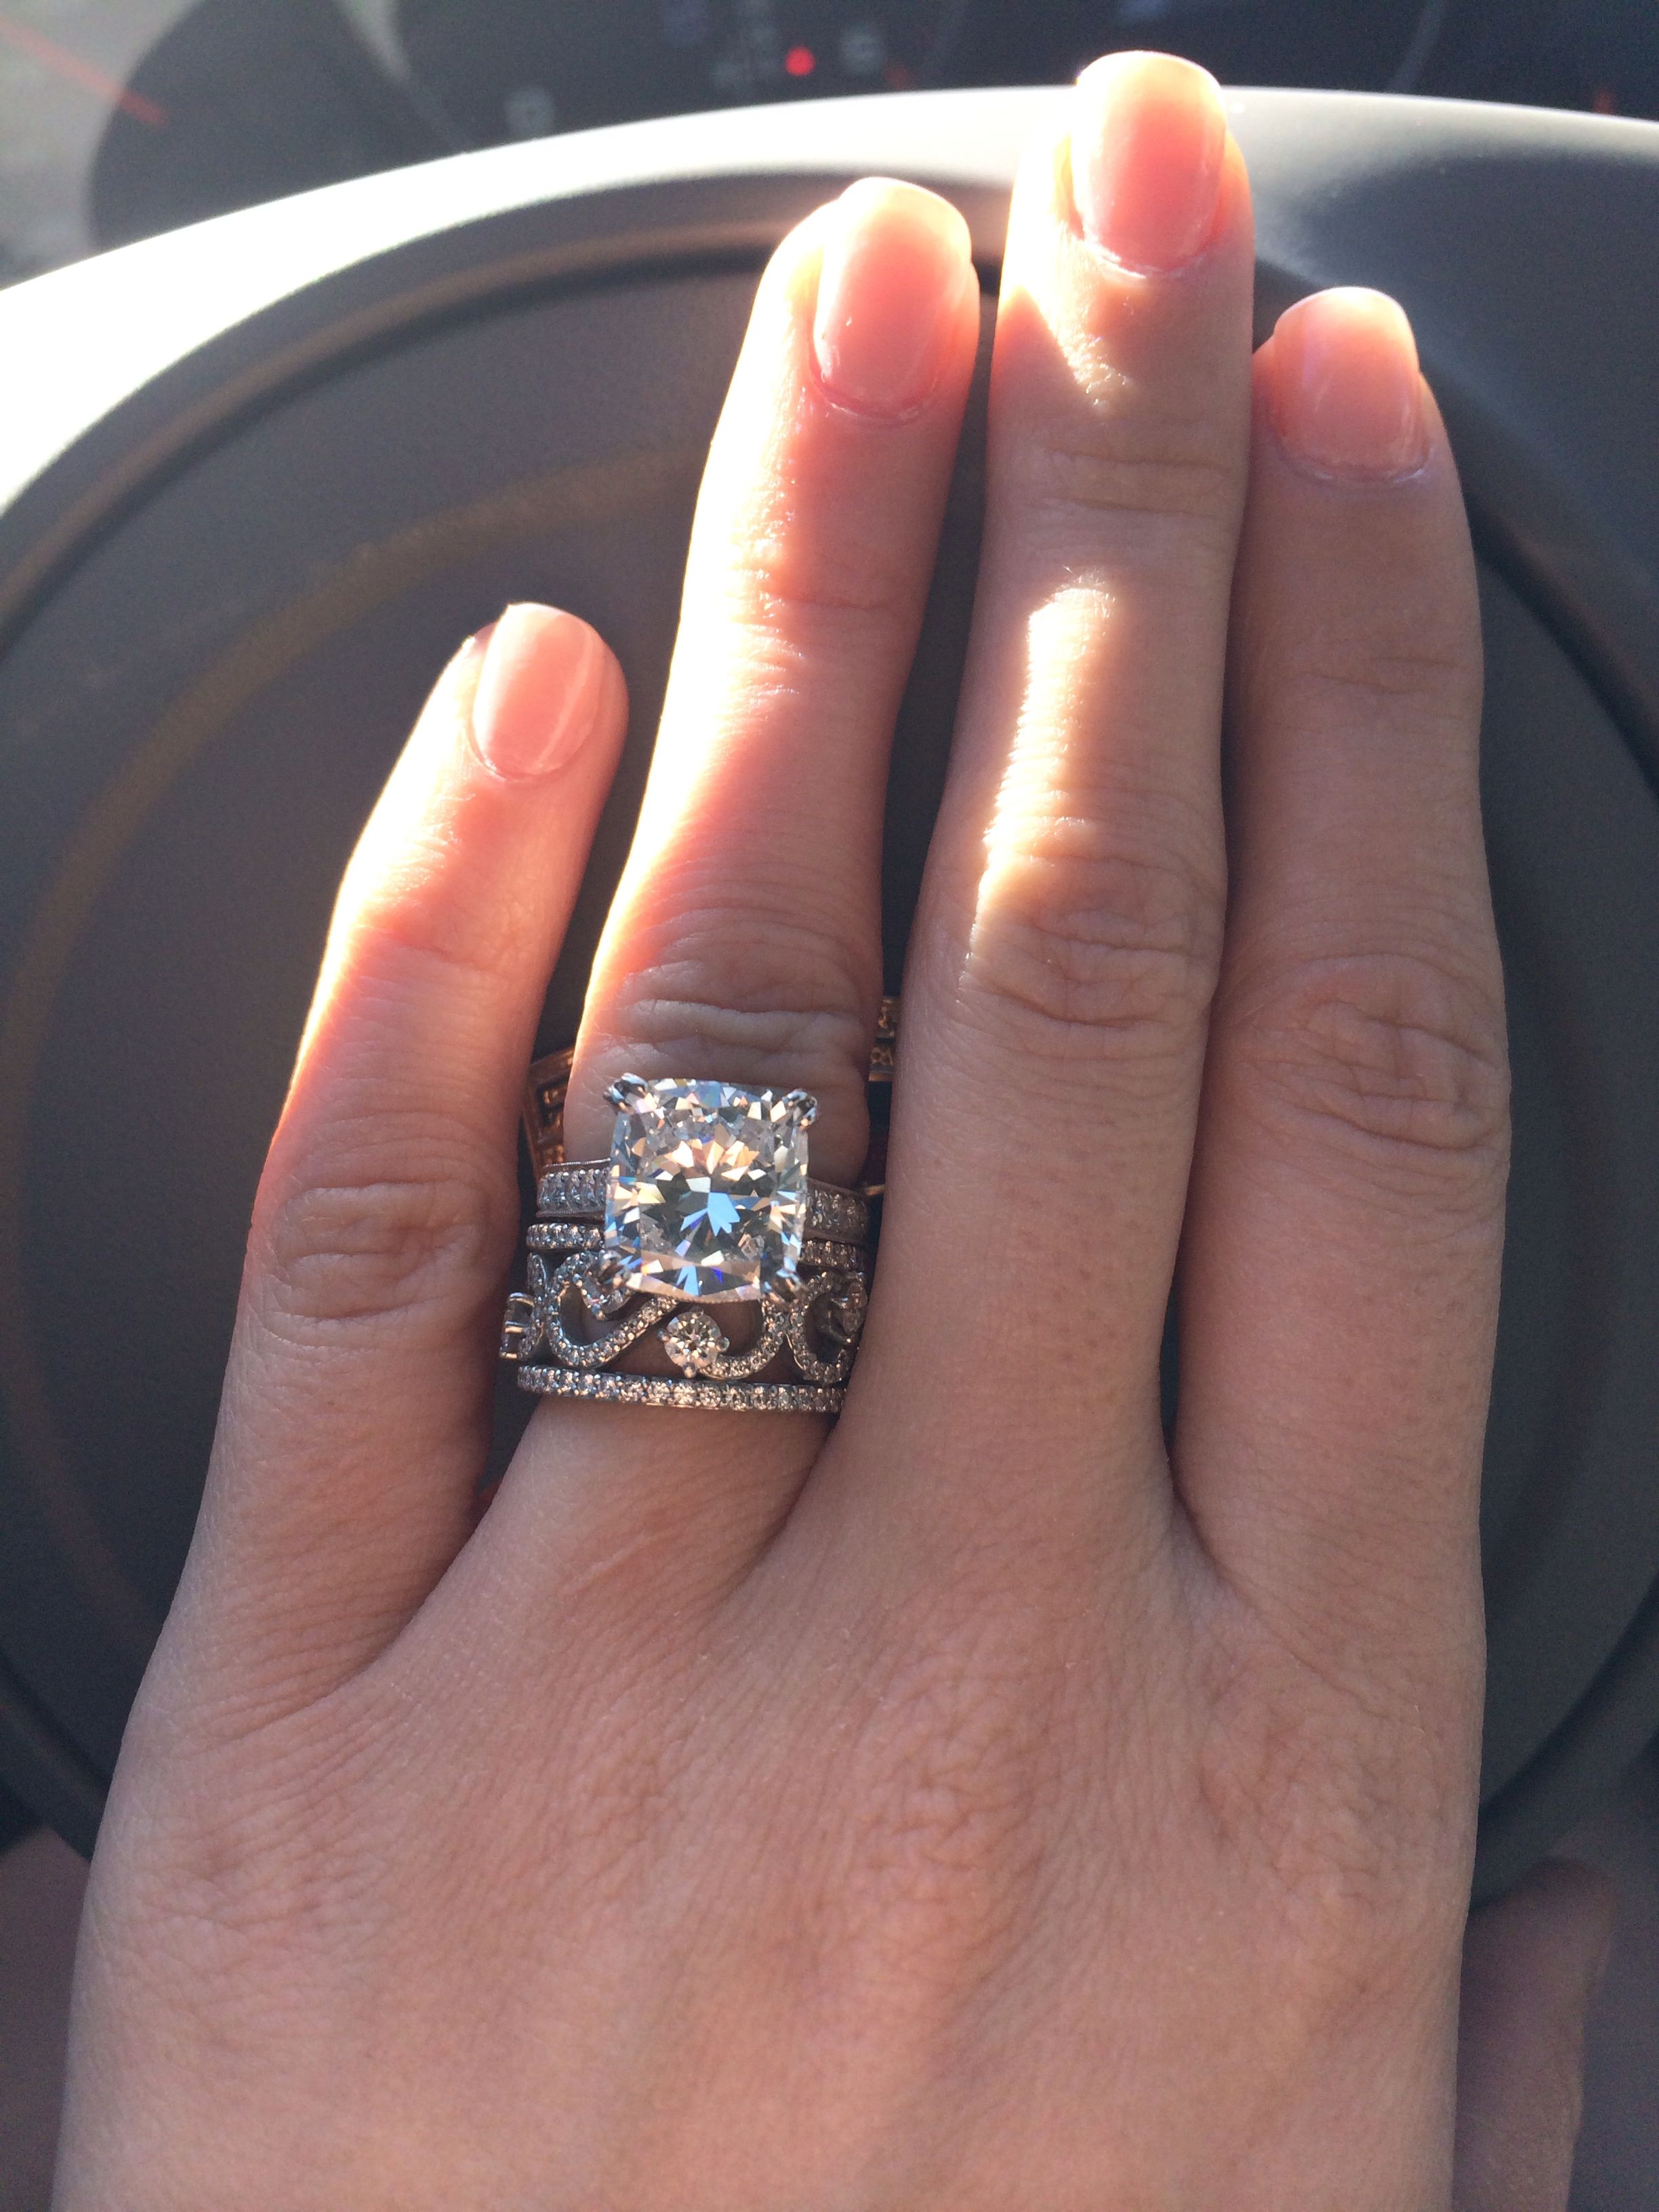 My promise ring stacked with my engagement ring! Western